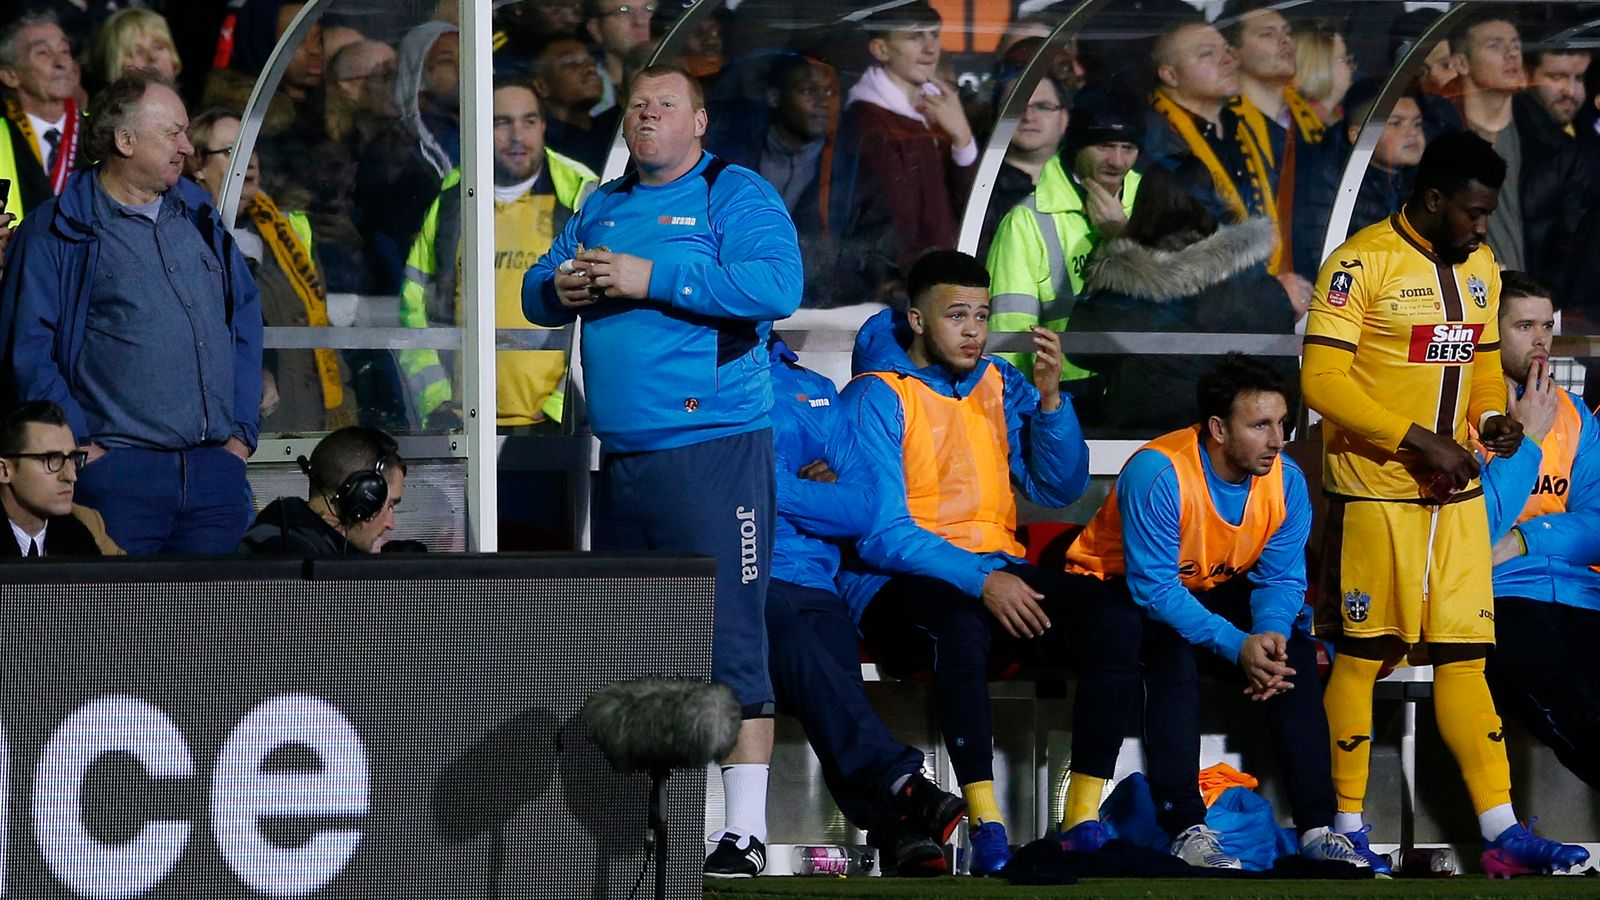 Pie-eating keeper resigns from Sutton Utd